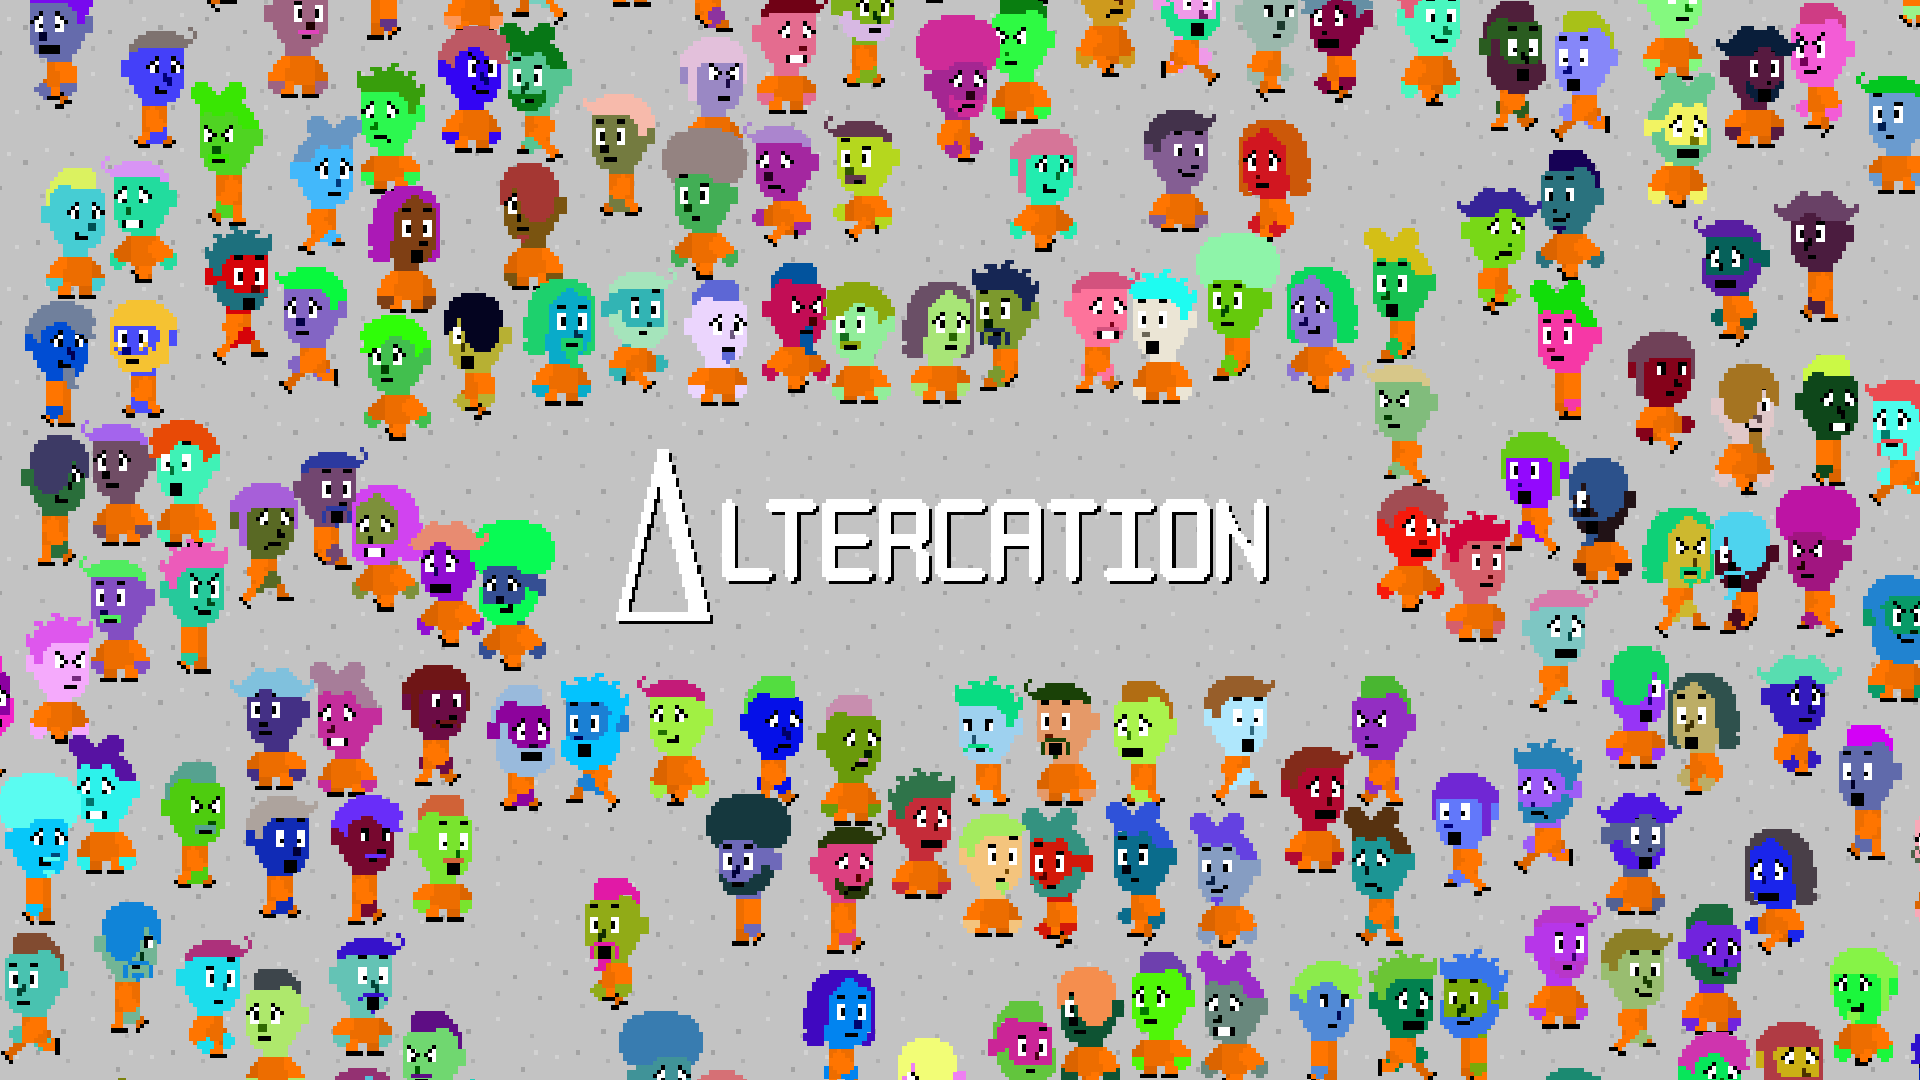 altercation_12_15_2019_12_51_41_pm.png